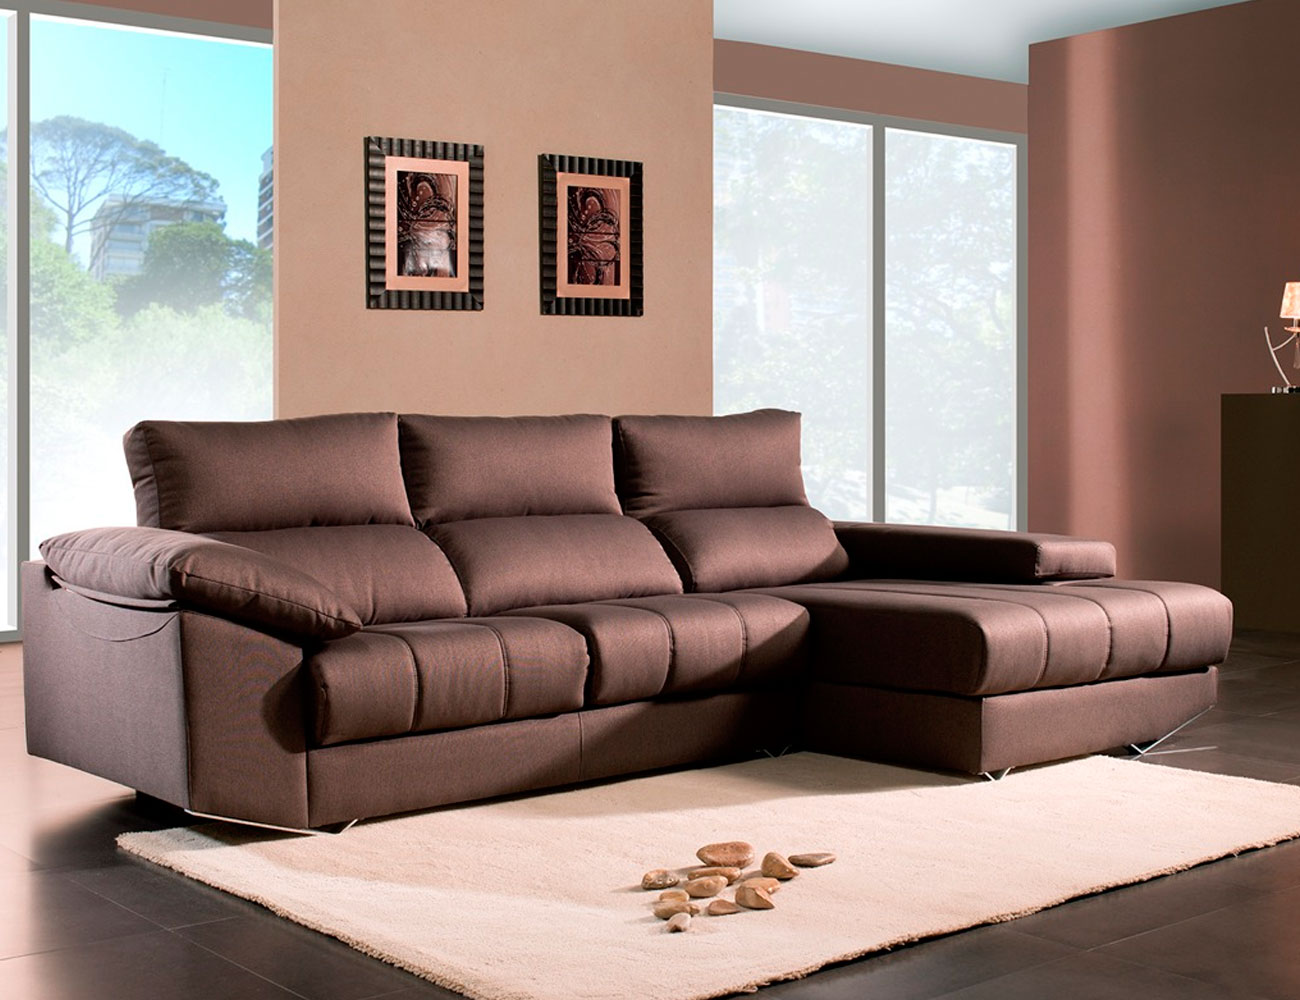 Sofa chaiselongue moderno brazo mecanico9